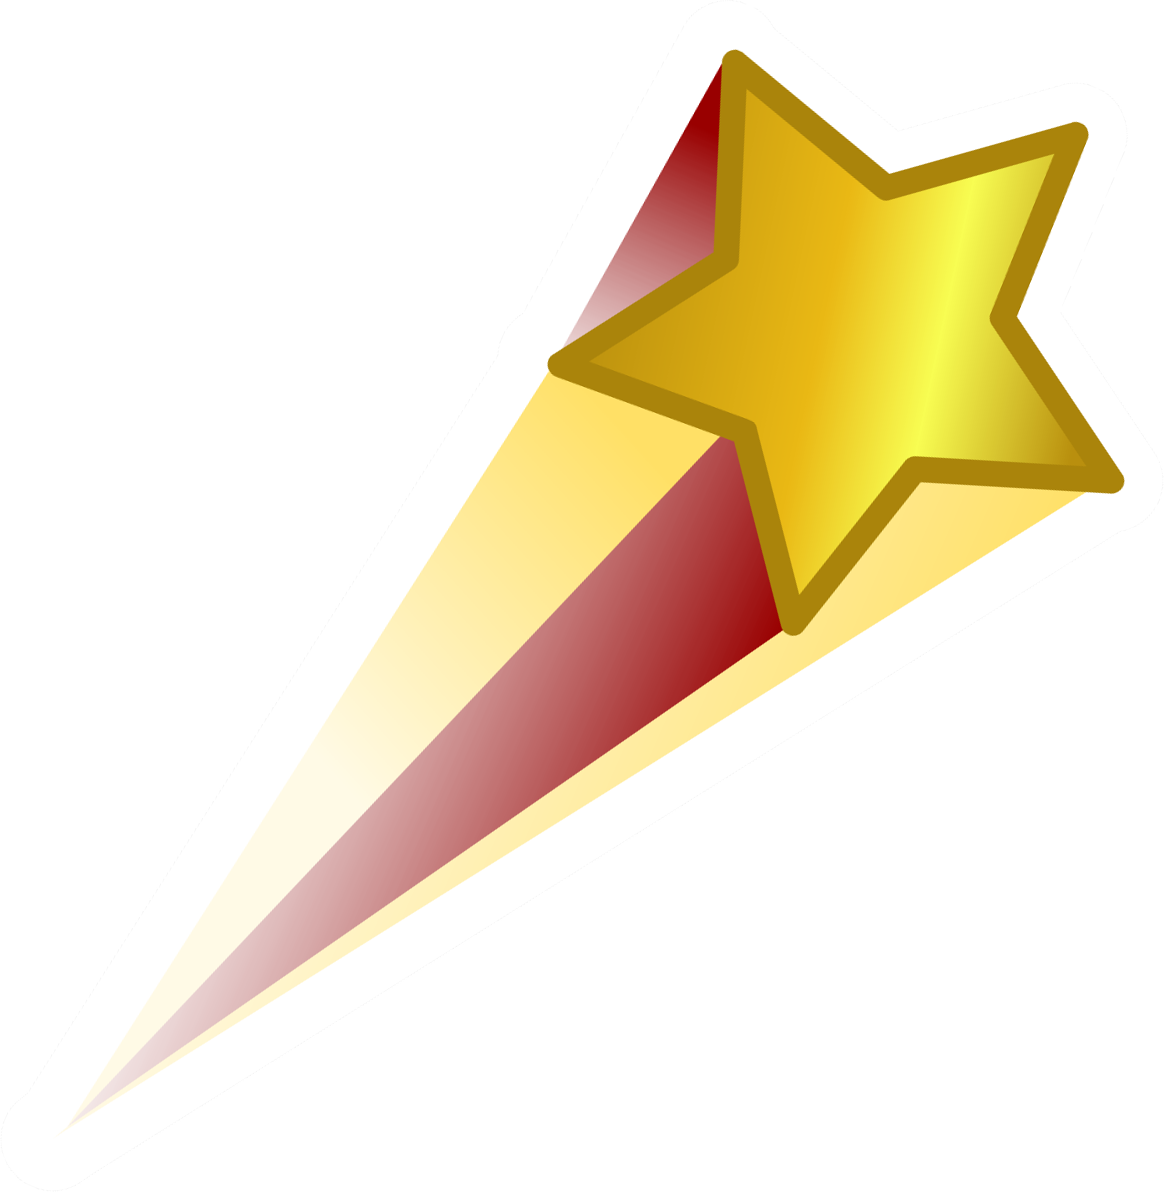 Shooting star transparent clipart